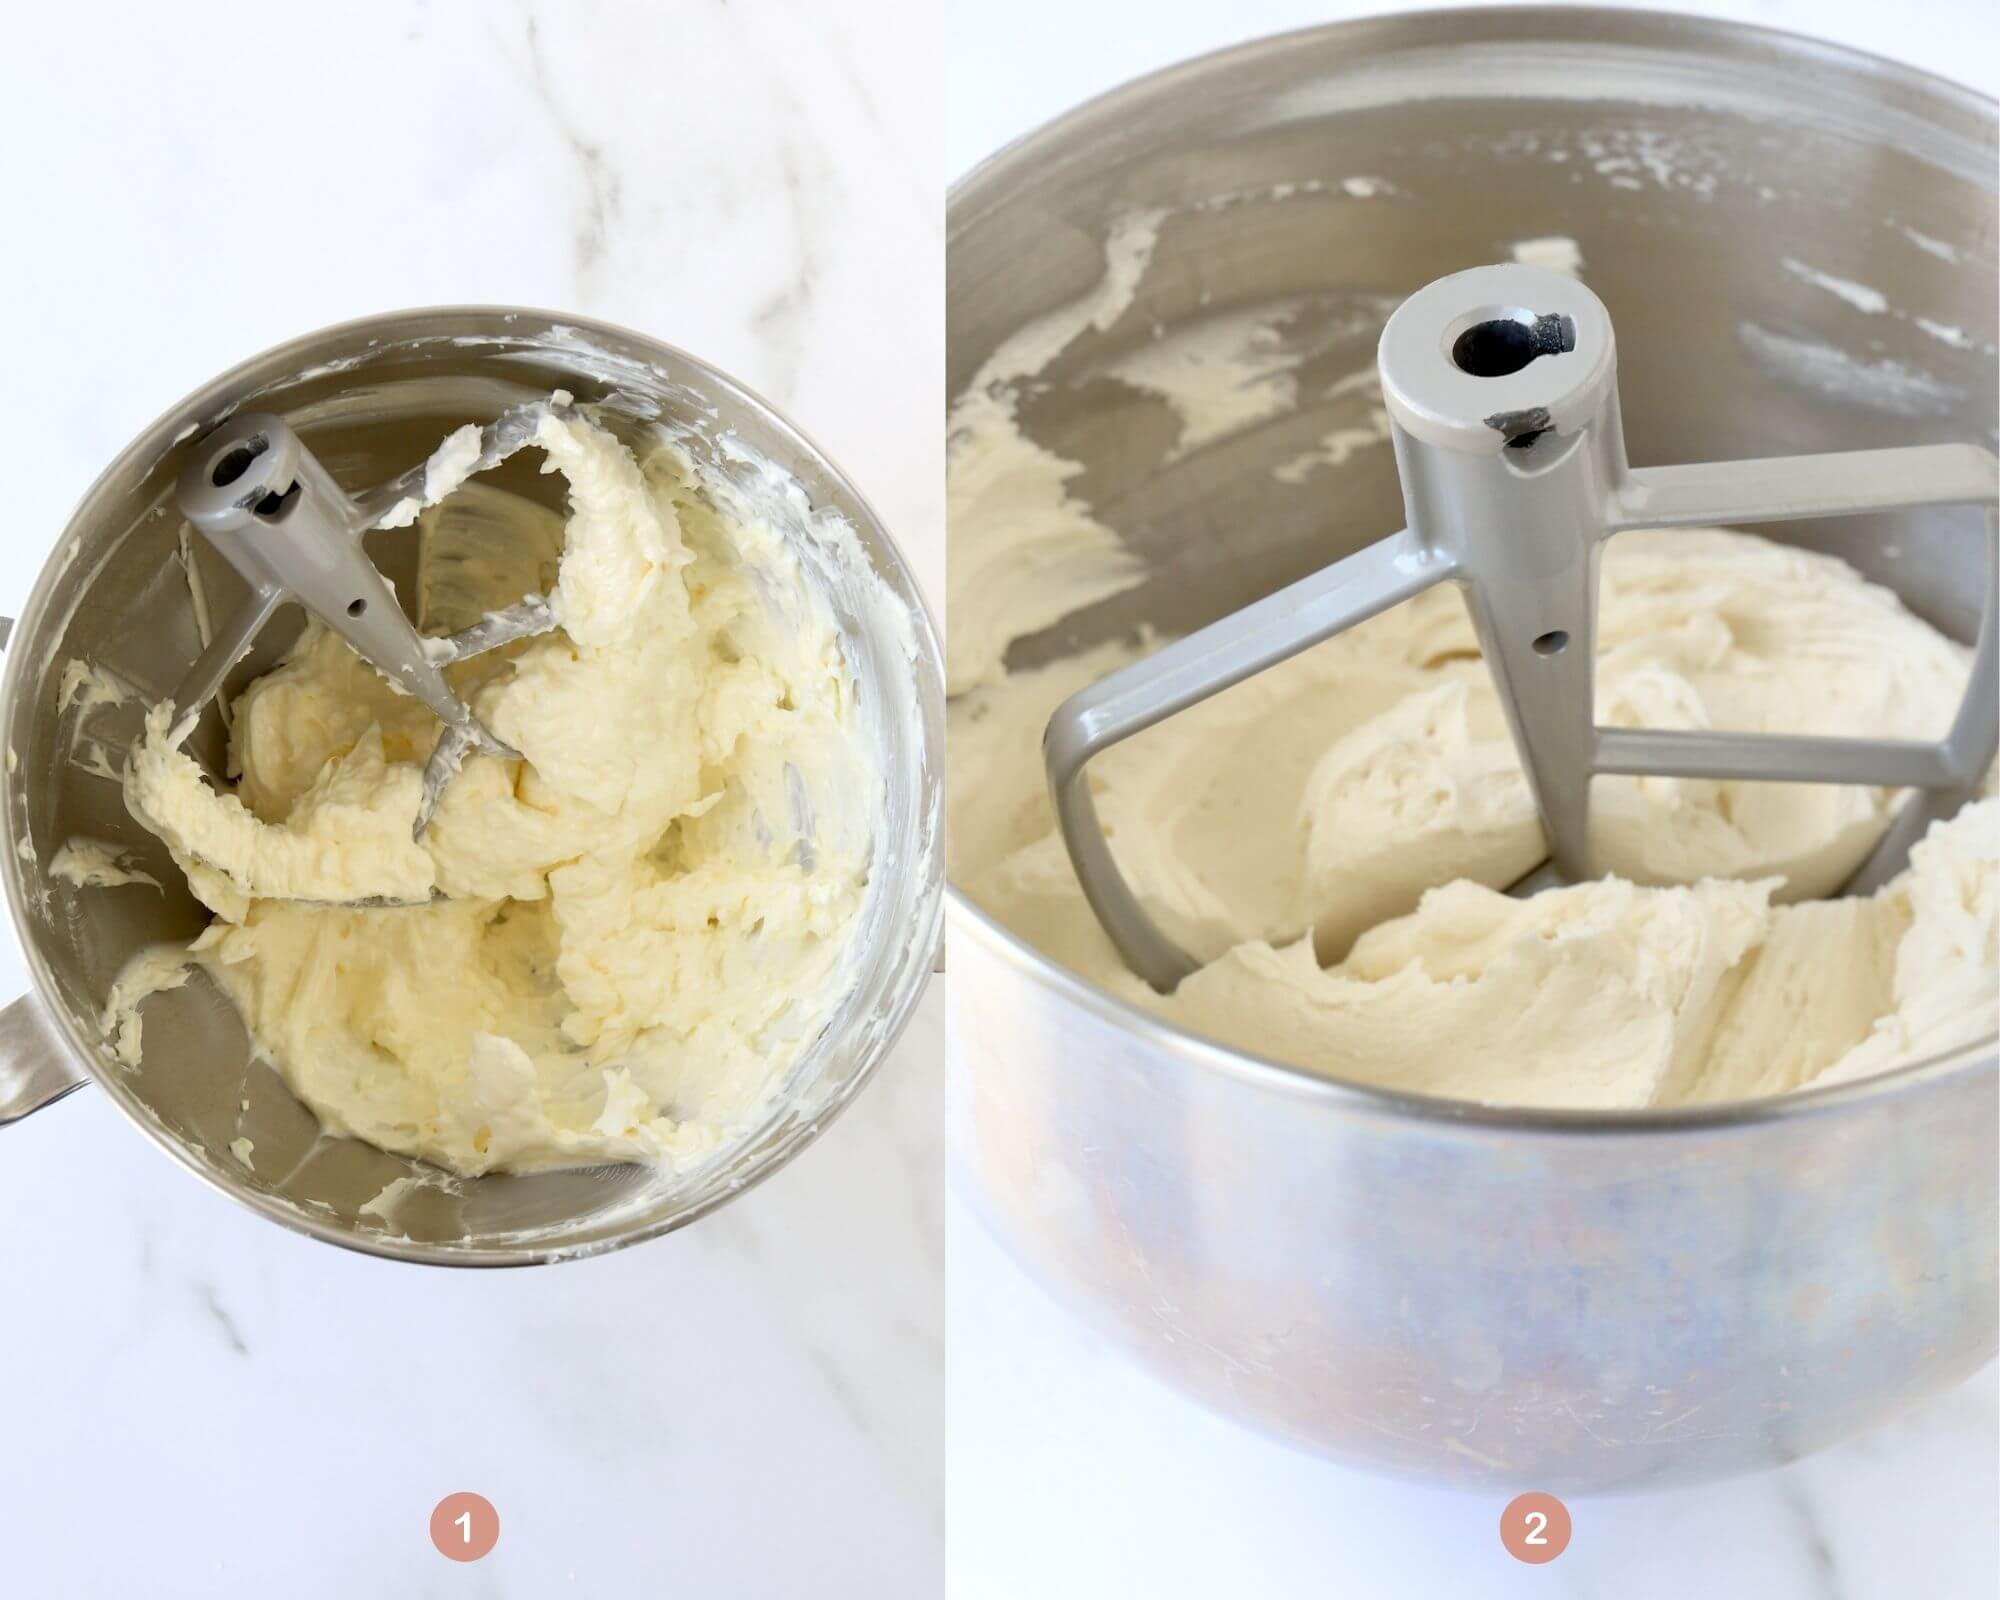 a mixing bowl with creamed butter and shortening next to a mixing bowl with the finished white frosting.